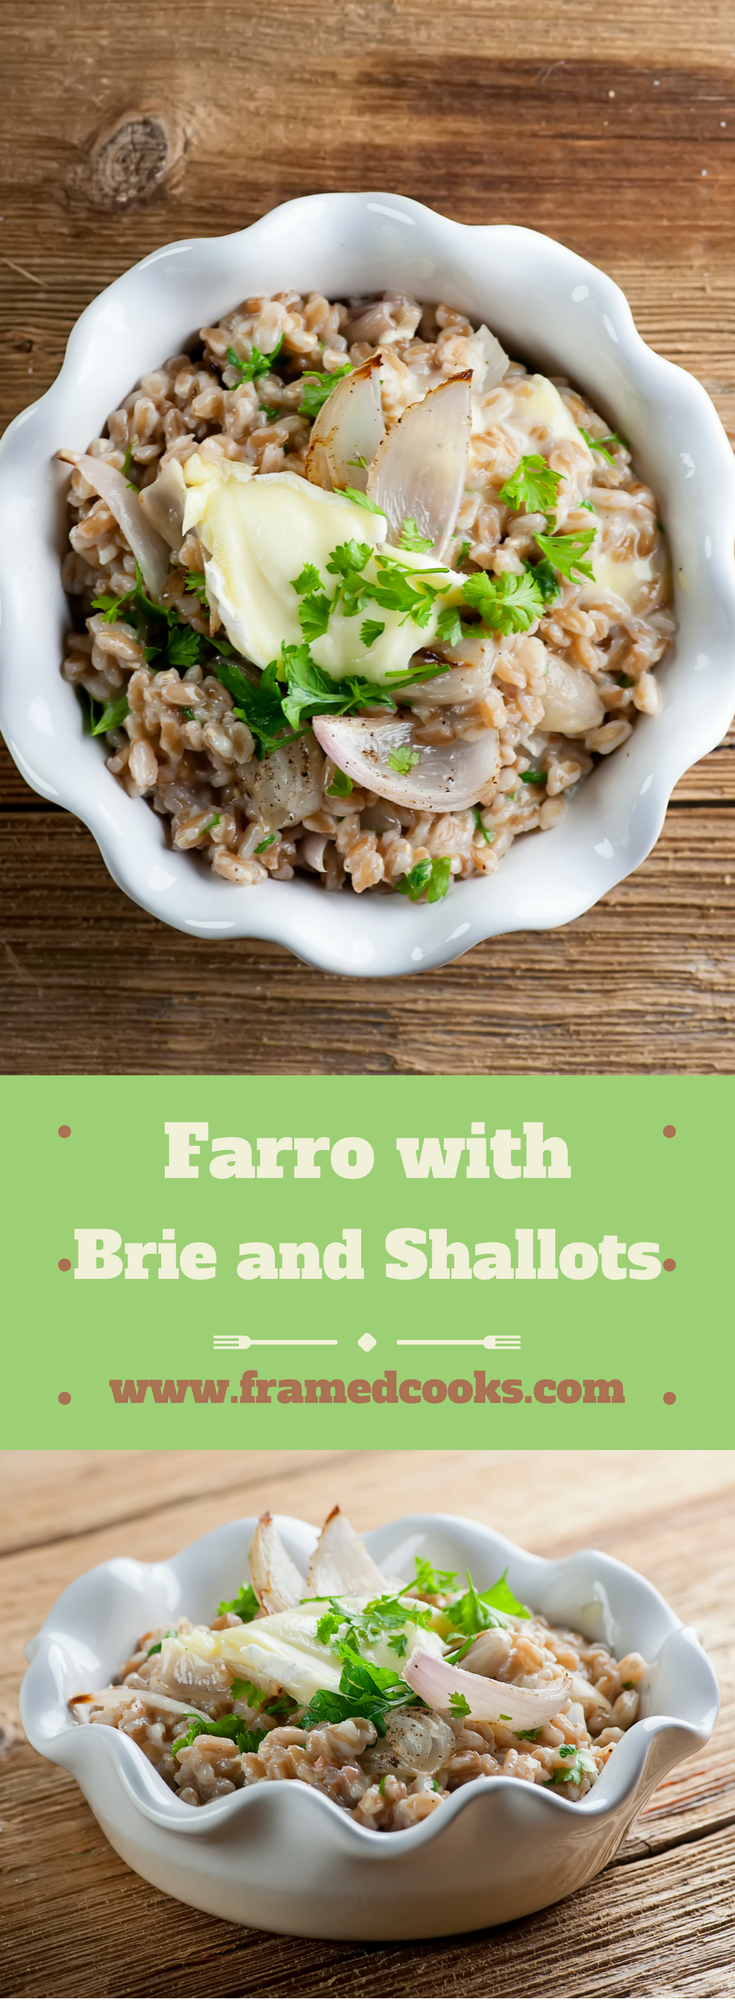 This recipe for a farro bowl with brie and shallots is an easy and elegant comfort food!